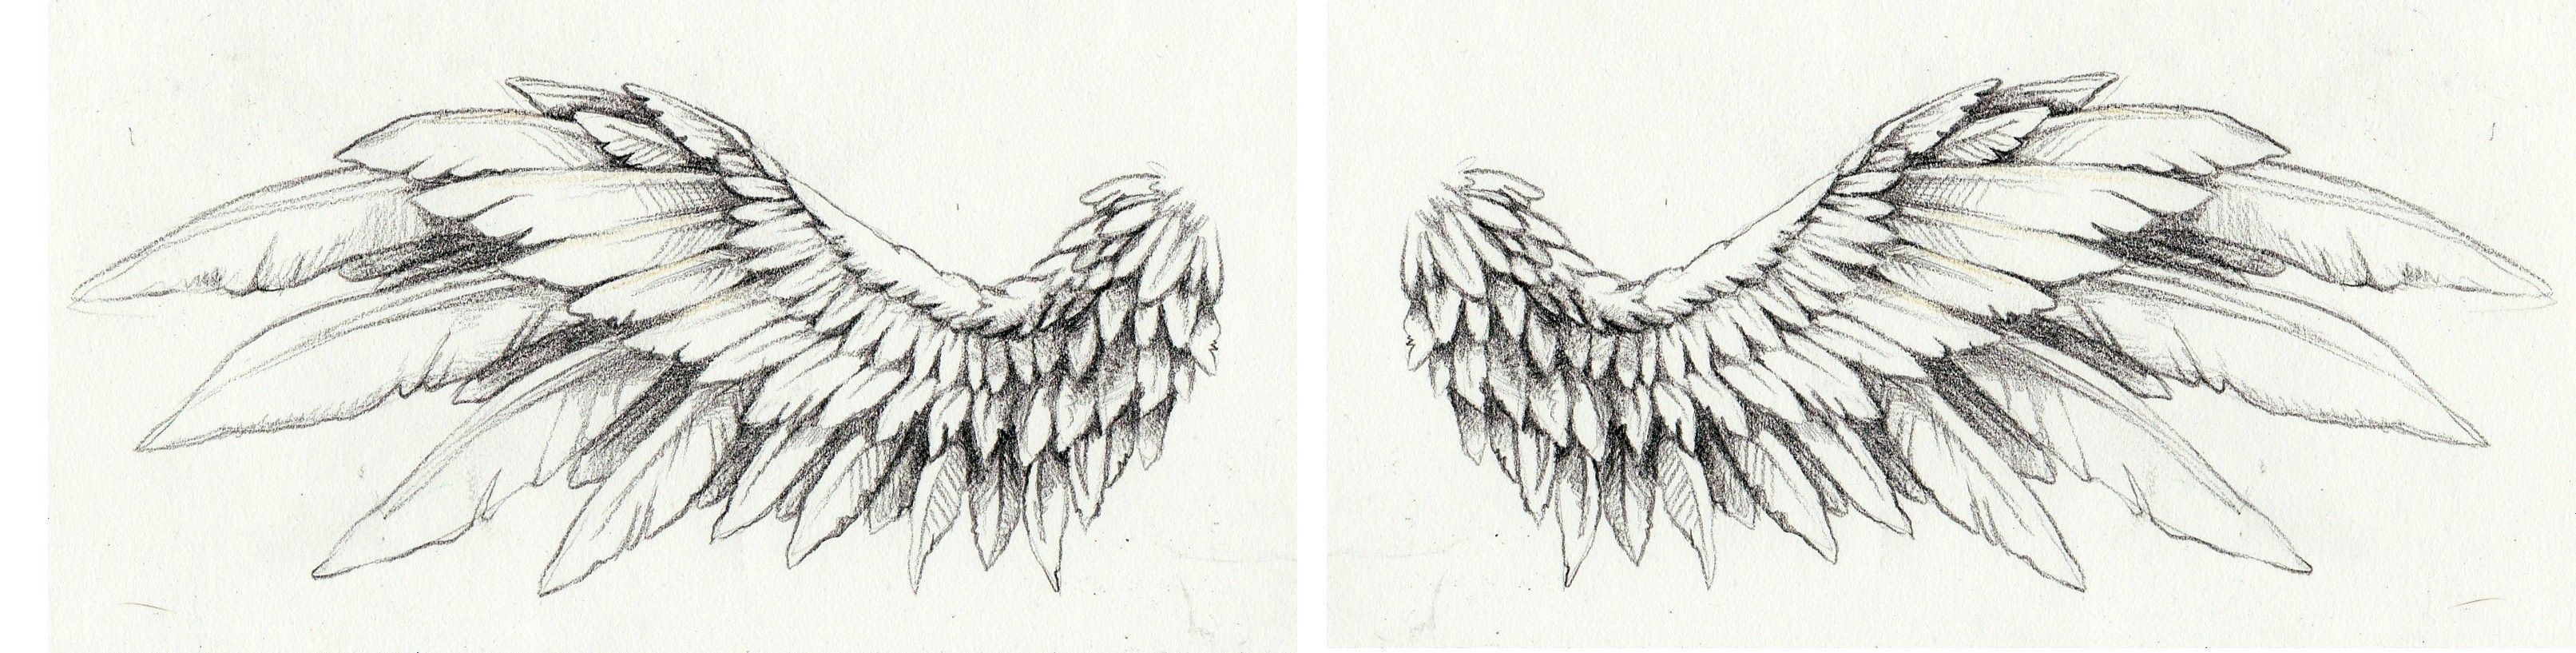 alis grave nil nothing is too heavy for he who has wings tattoo ideas pinterest tattoo. Black Bedroom Furniture Sets. Home Design Ideas